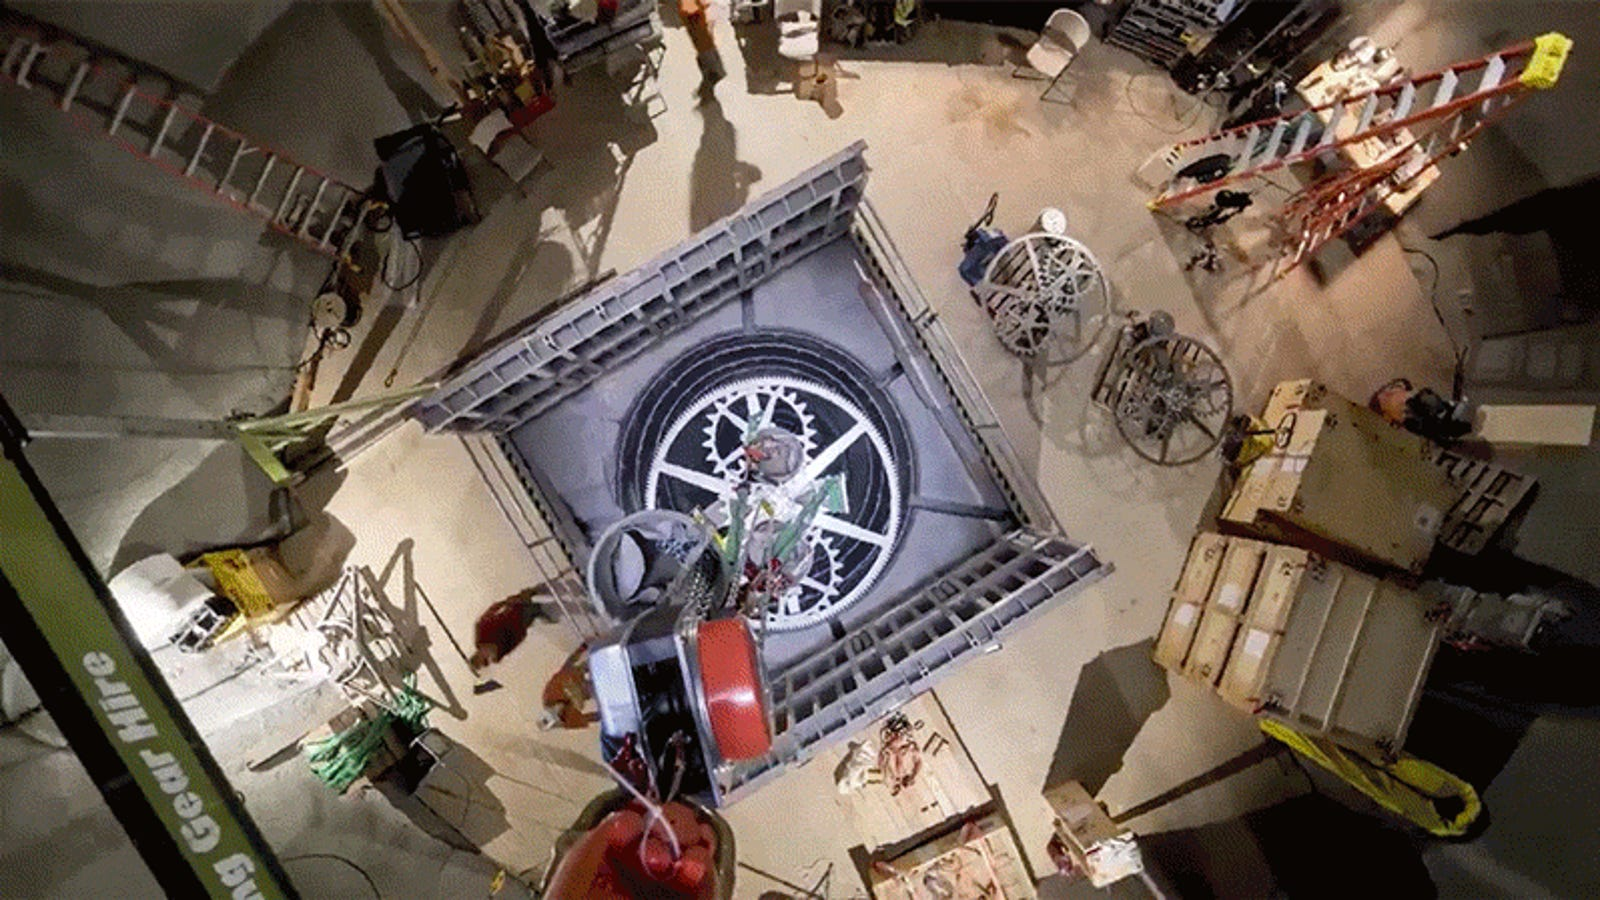 Jeff Bezos Begins Installation of His Bonkers 10,000 Year Clock